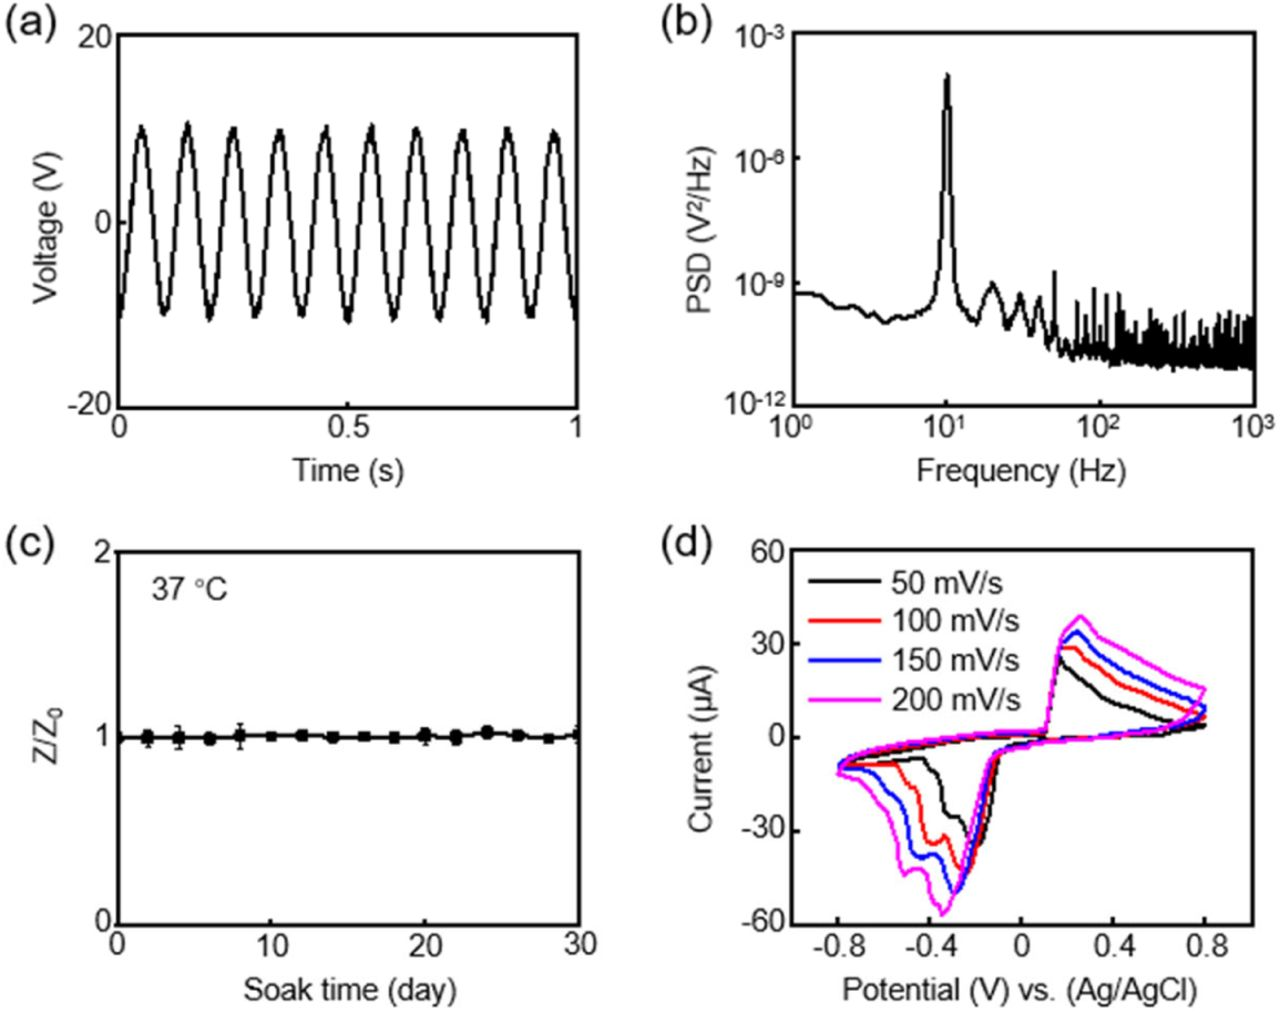 a) Electrical benchtop recording output from the Ag <t>NWs</t> microelectrodes, with 10 Hz, 20 mV peak-to-peak sine wave input. b) PSD of the signals recorded by the Ag NWs microelectrodes in (a). c) Soak test of the Ag NWs microelectrodes in a <t>PBS</t> solution at 37 °C. Z0 is the impedance at day 0, whereas Z represents the impedance at a specific day. d) CV curves of the Ag NWs microelectrodes at various scan rates.